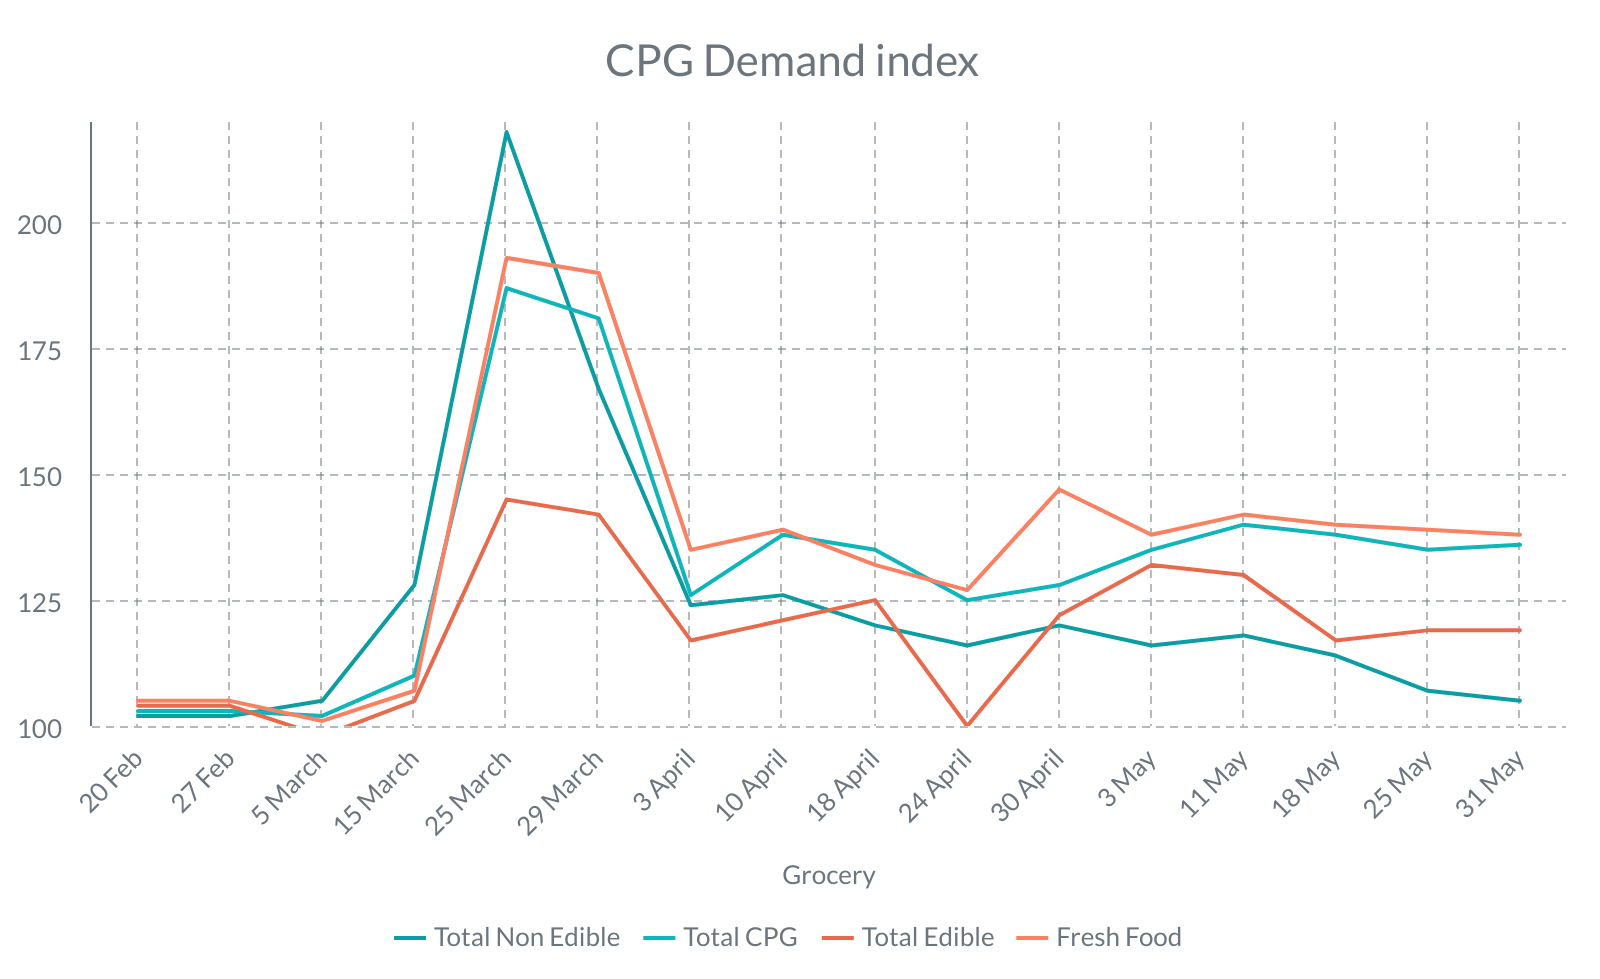 CPG Demand index